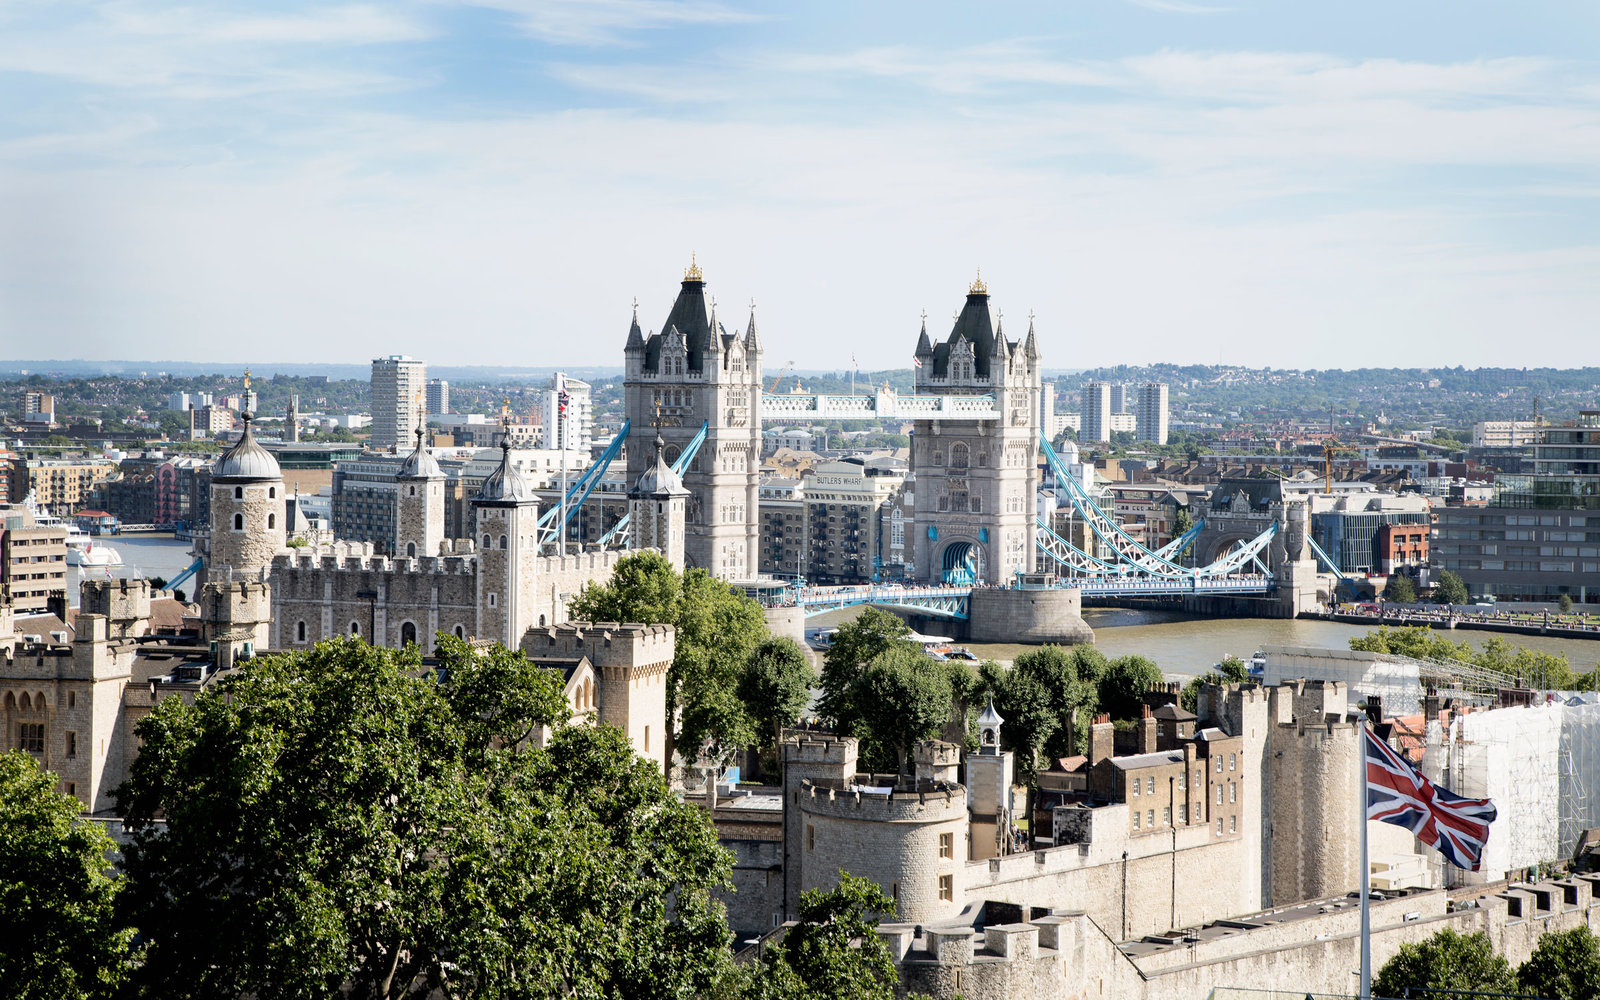 History and Secrets of the Tower of London